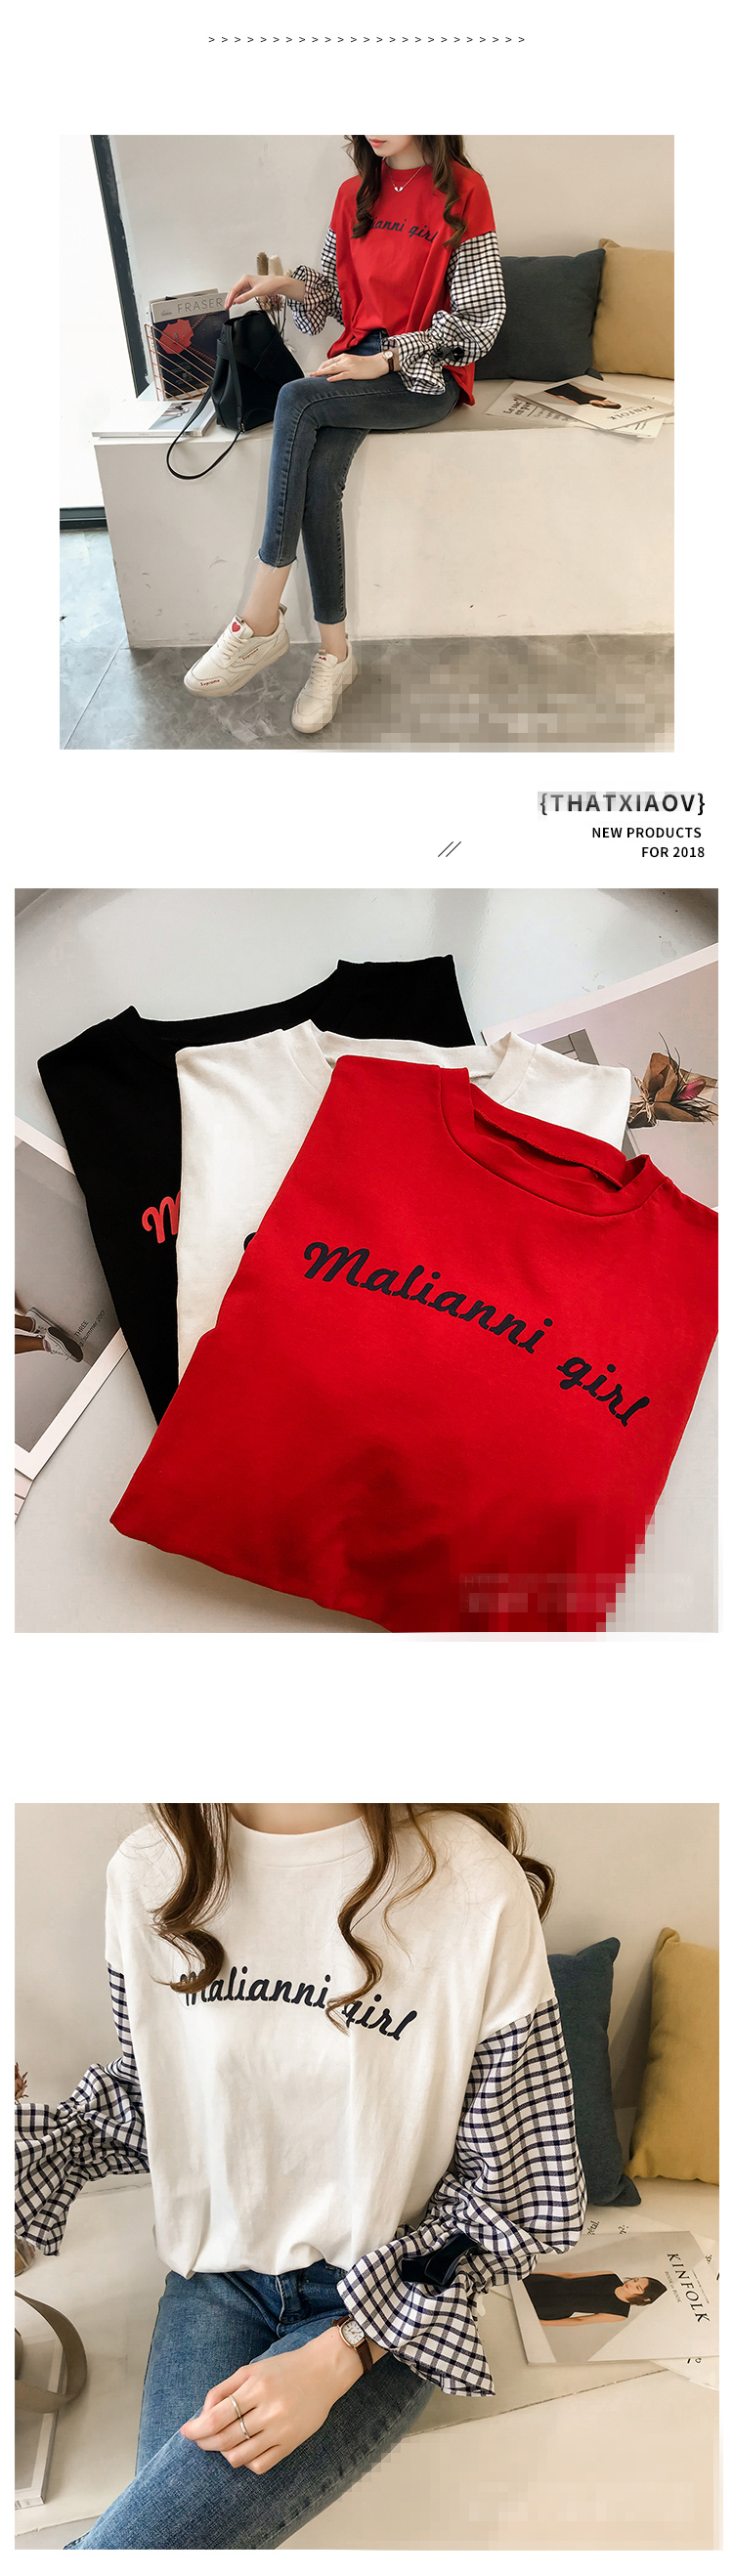 M-4xl Plus Size Cotton Casual T-shirts Women Plaid Patchwork Flare Sleeve O-neck Tshirts Harajuku Fake Two Piece Loose Tees Tops 13